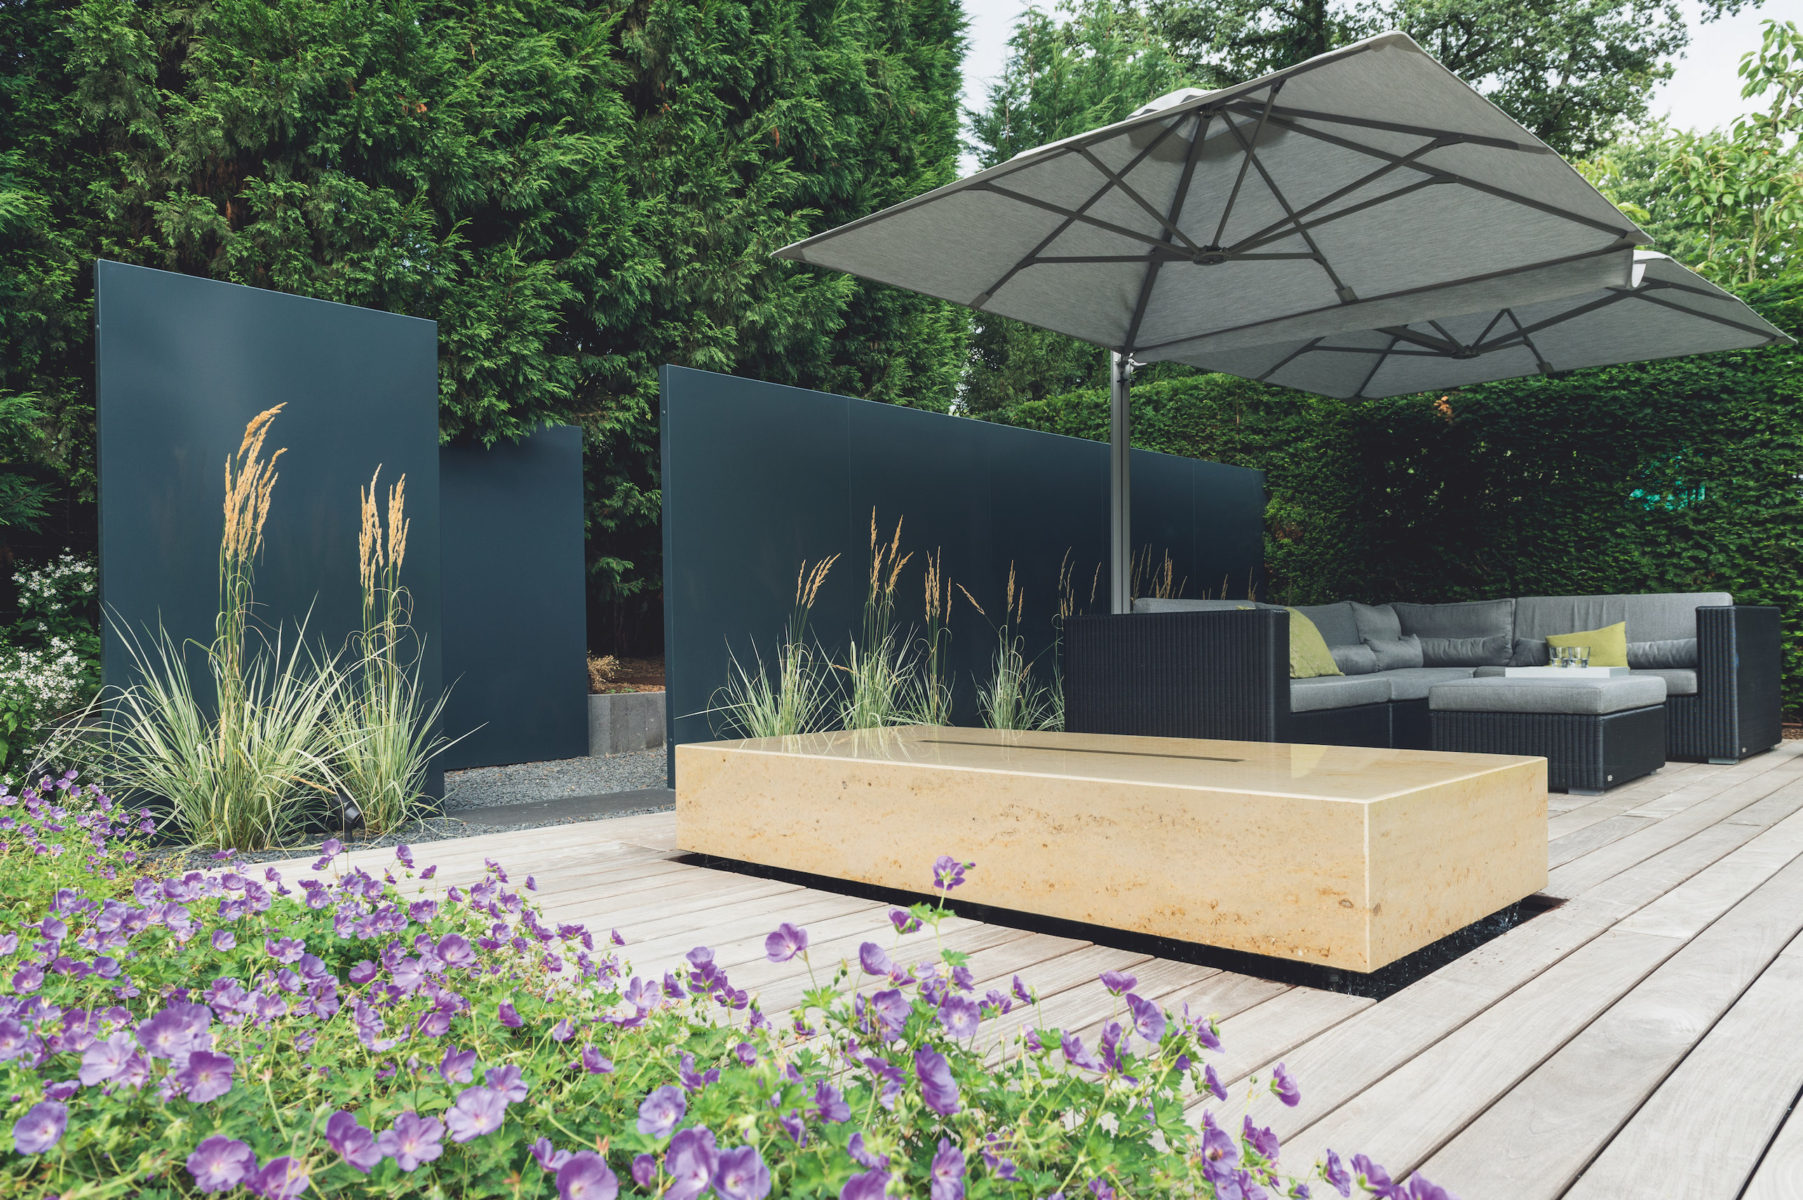 callwey gartenstory bl hender stadtgarten in d sseldorf. Black Bedroom Furniture Sets. Home Design Ideas